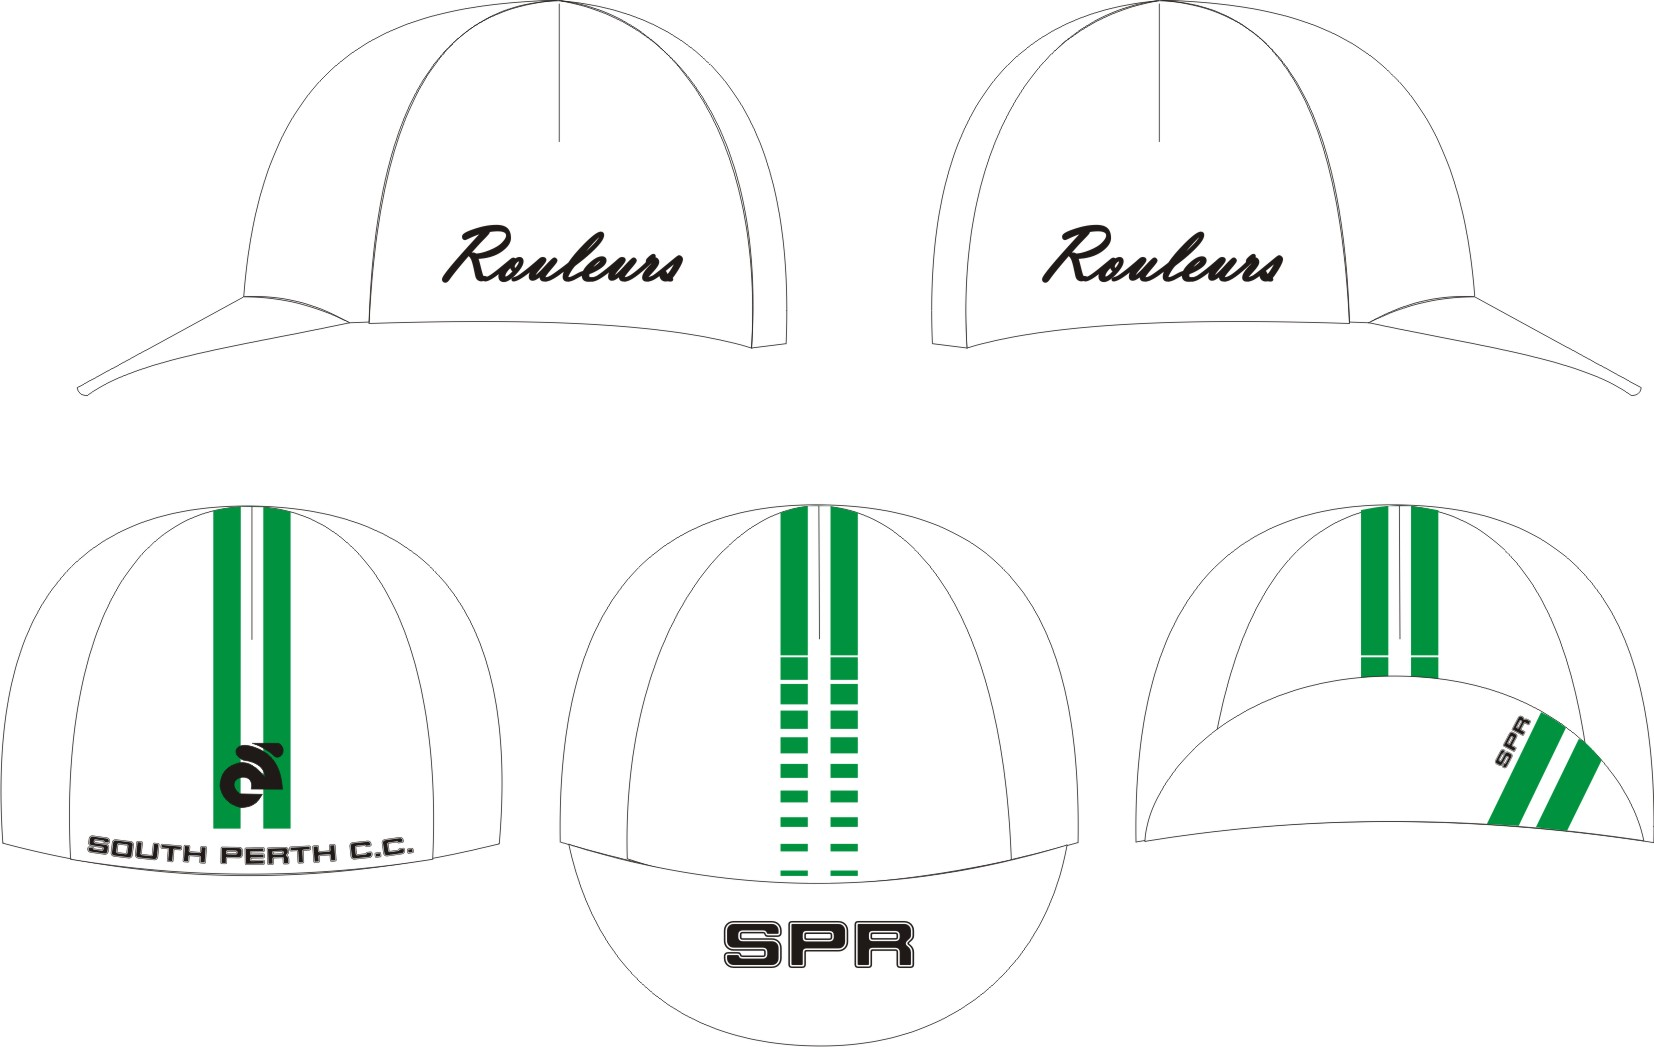 Skull cap sewing pattern images craft decoration ideas skull cap sewing pattern image collections craft decoration ideas newsboy cap sewing pattern image collections craft jeuxipadfo Images